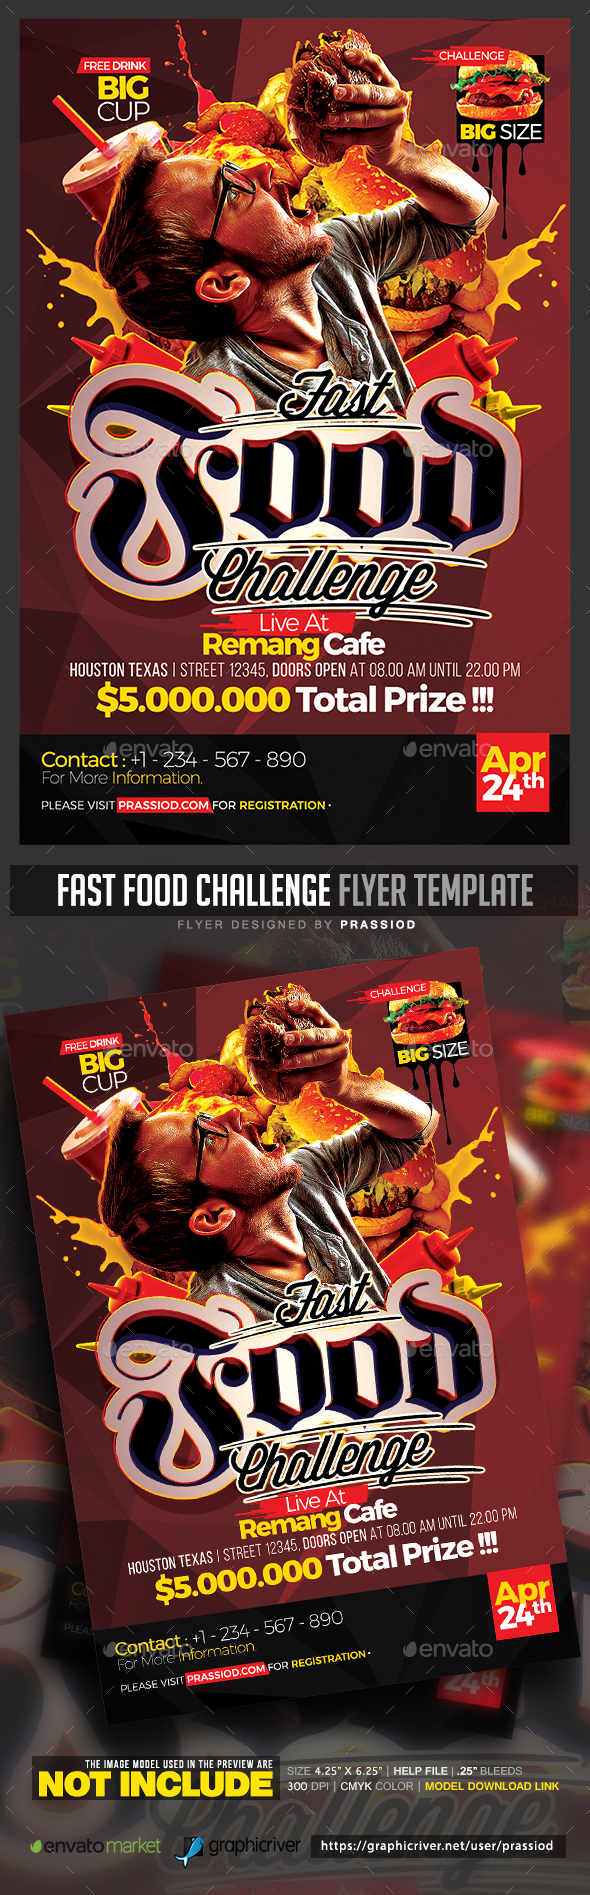 Fast Food Challenge Flyer Template